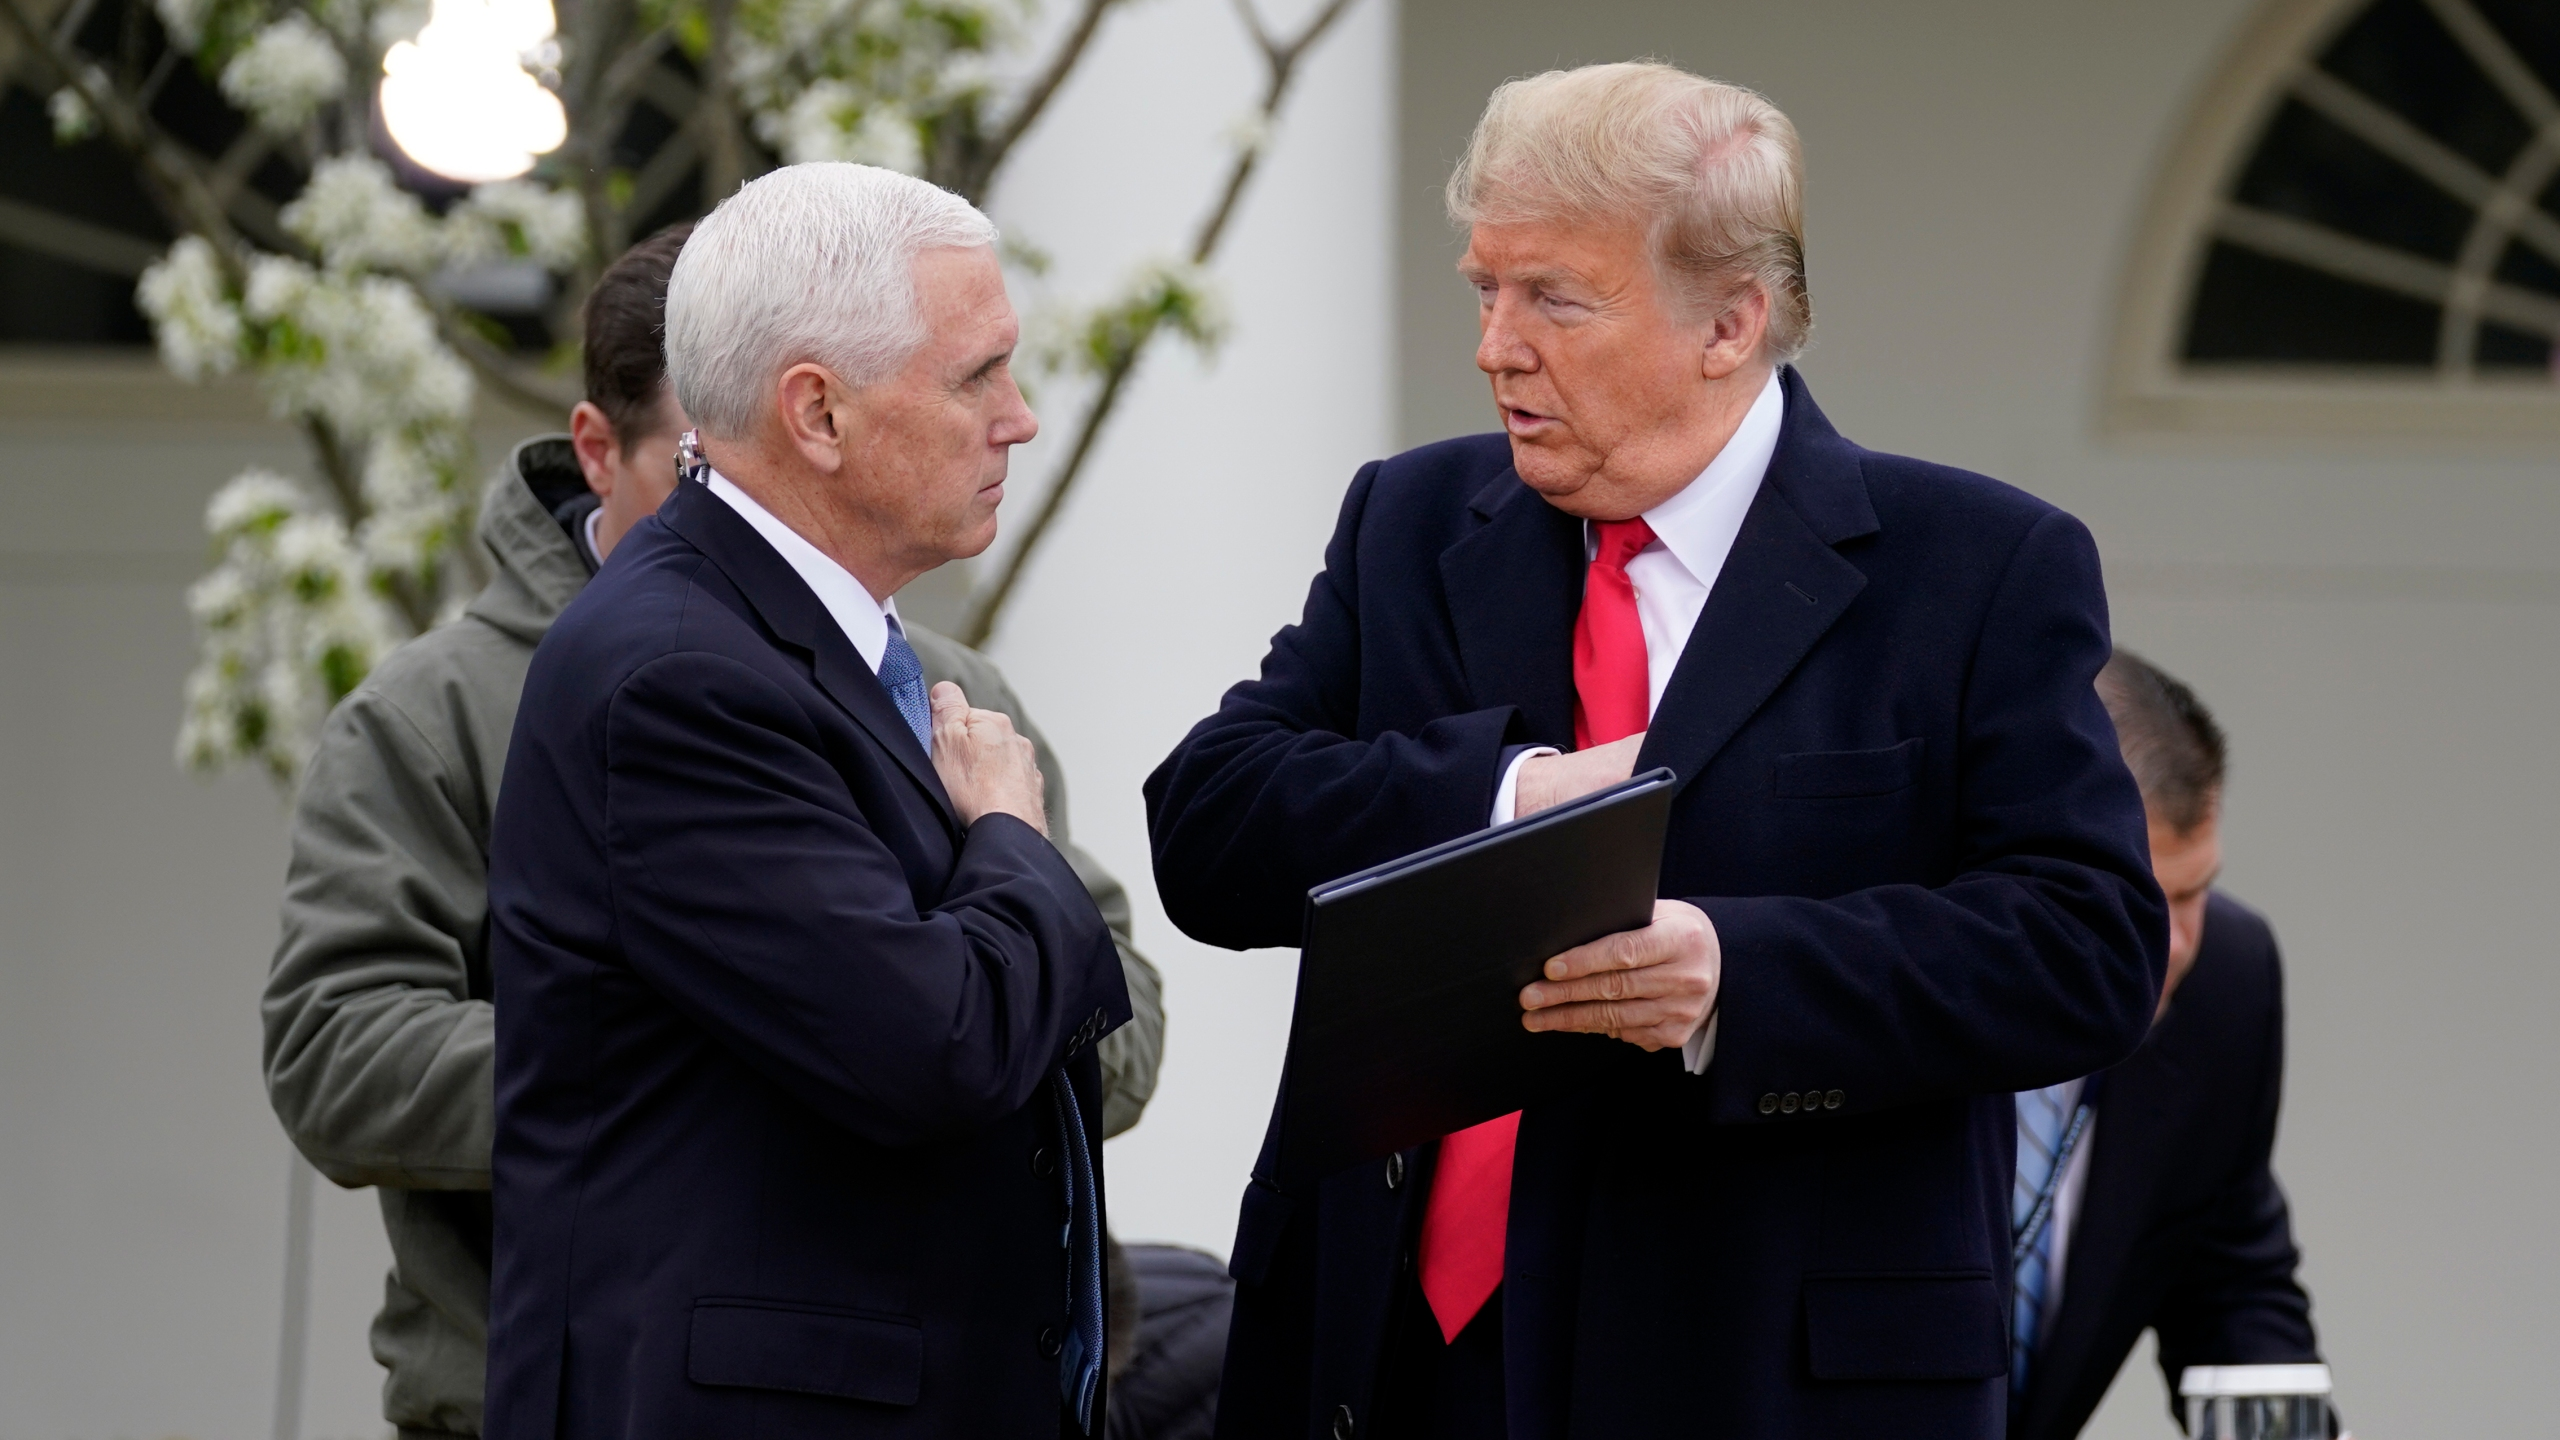 President Donald Trump speaks with Vice President Mike Pence as they arrive for a Fox News Channel virtual town hall, at the White House, Tuesday, March 24, 2020, in Washington. (AP Photo/Evan Vucci)